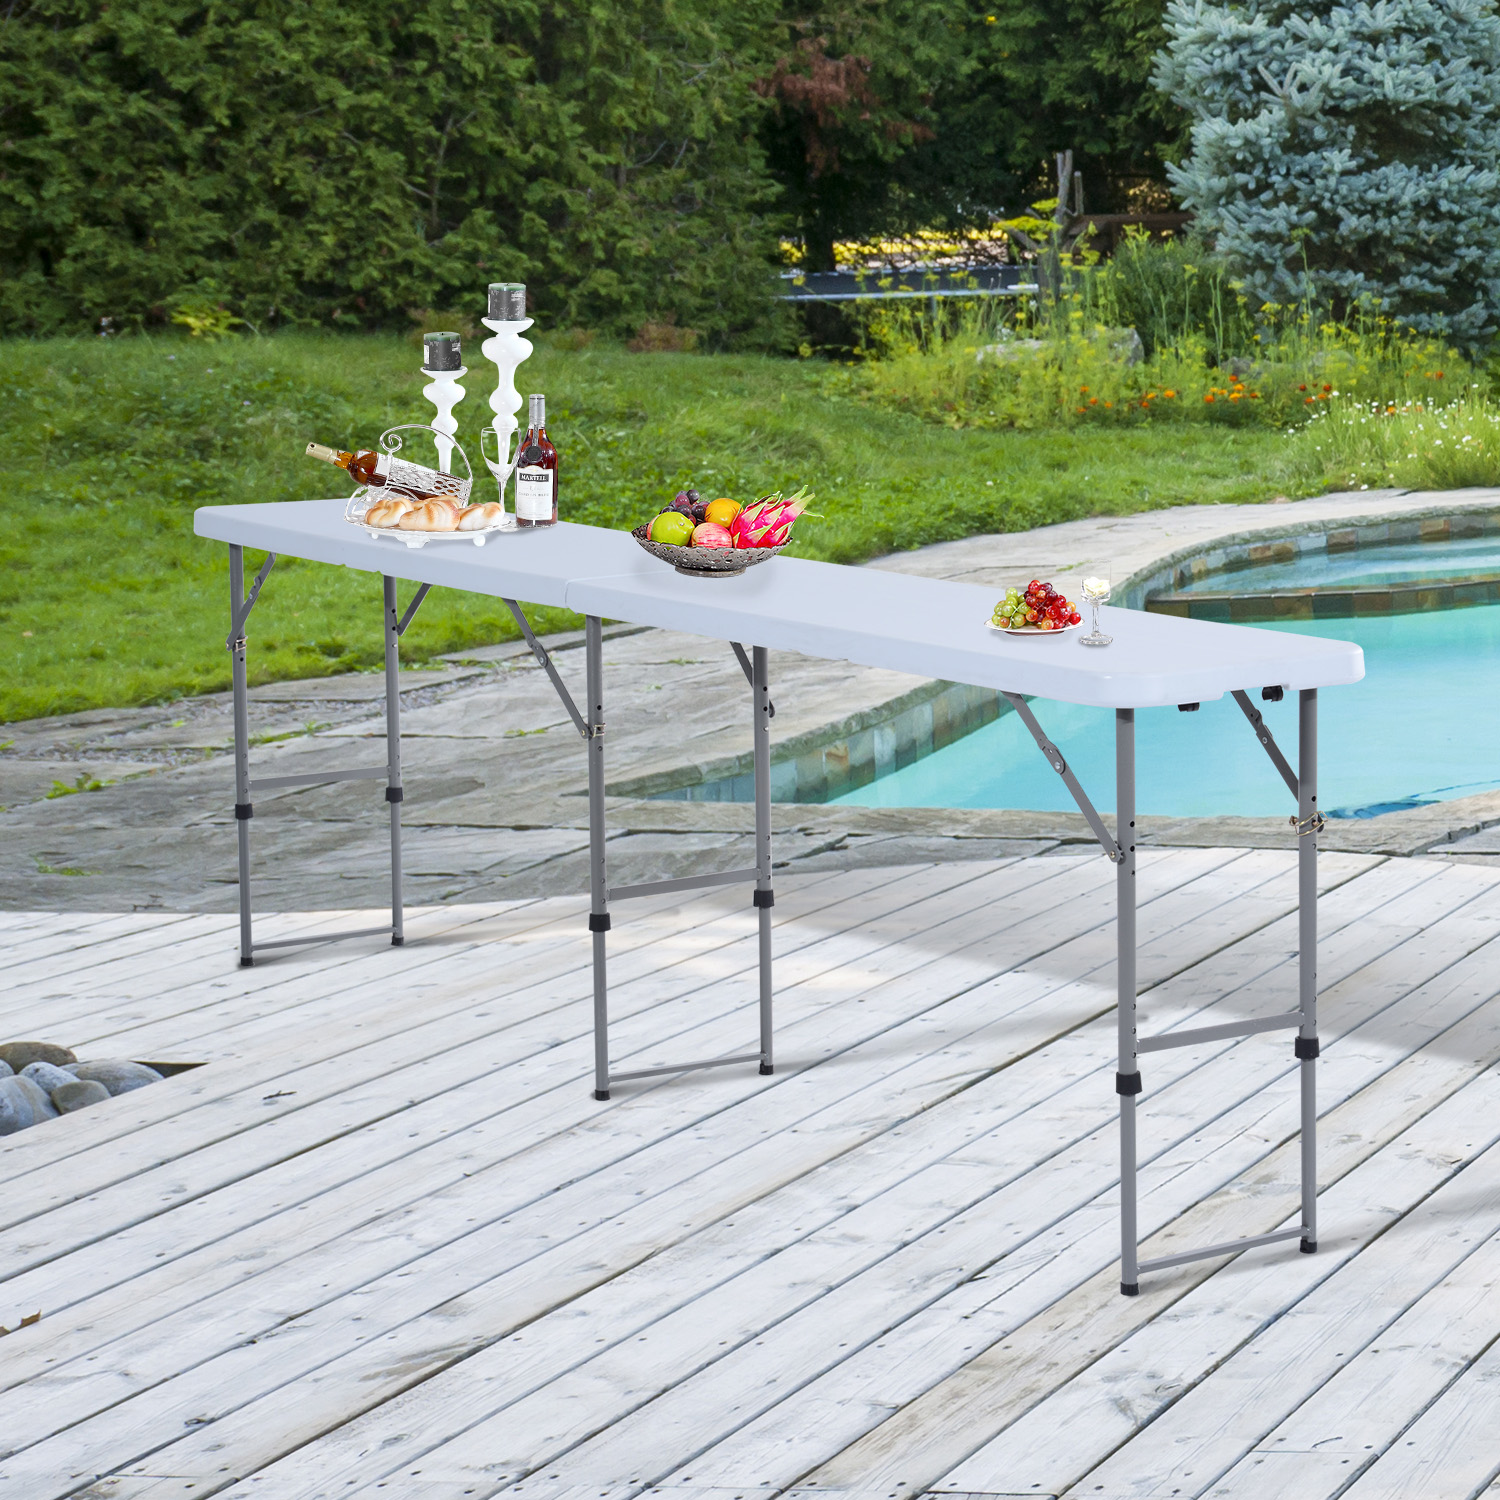 Image of CAD $99.99 Outsunny Folding Camping 8.6' Picnic BBQ Table Party Garden Outdoor Portable / with Adjustable Leg (9 Feet) 9ft w/ Canada 46655326973